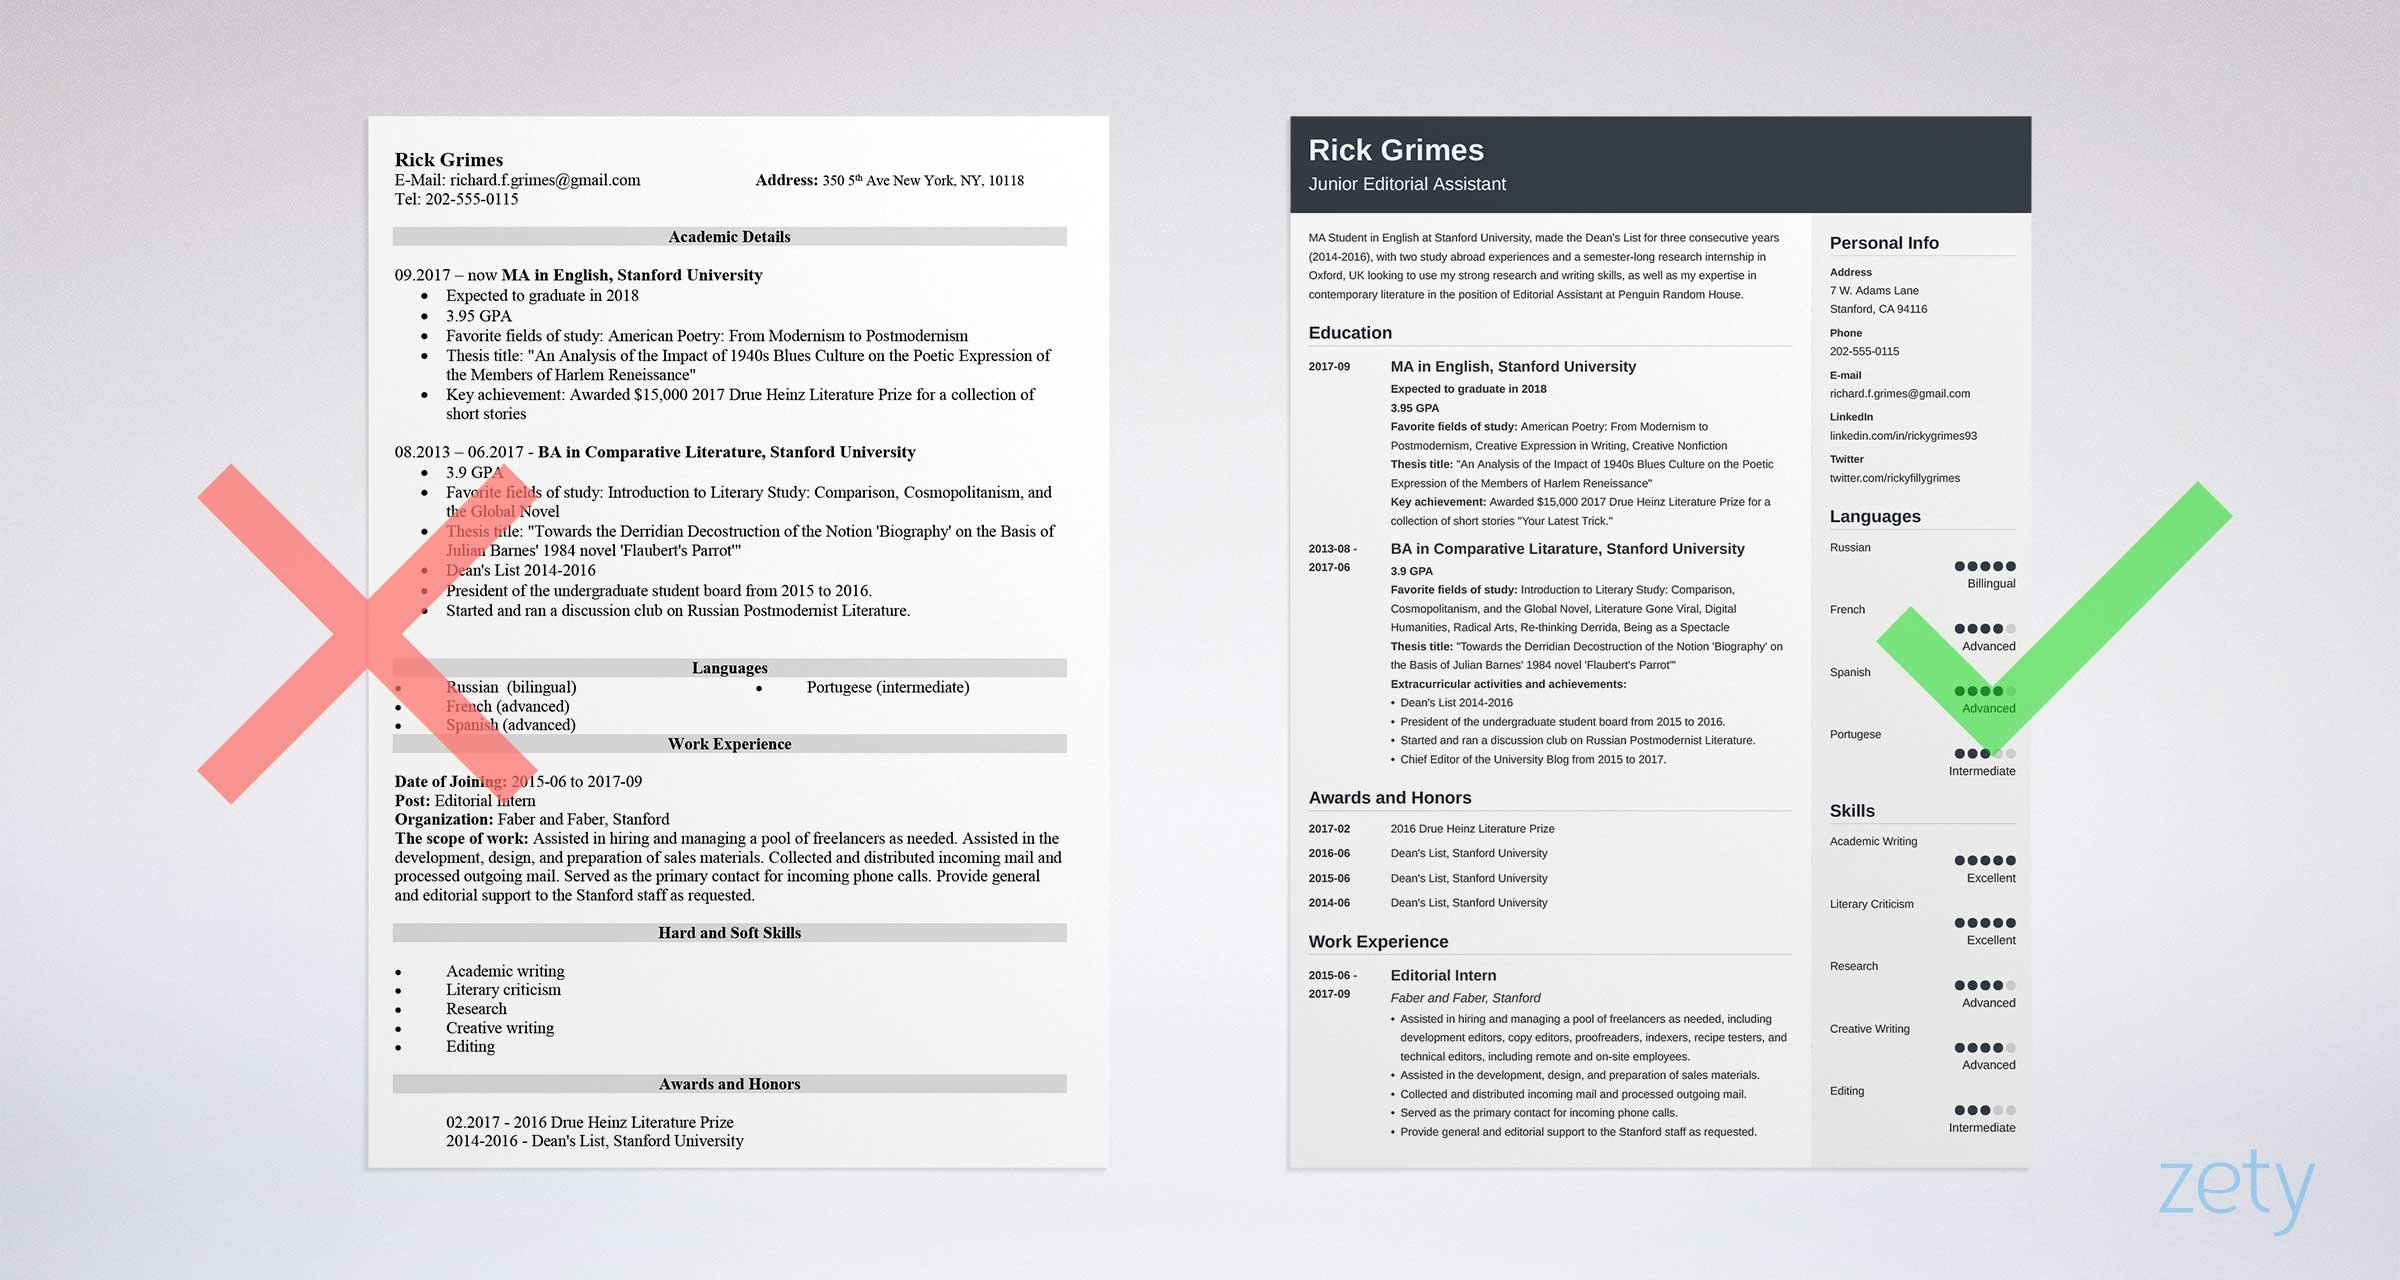 Resume Summary for someone with No Work Experience - Entry Level Resume Sample and Plete Guide [ 20 Examples]